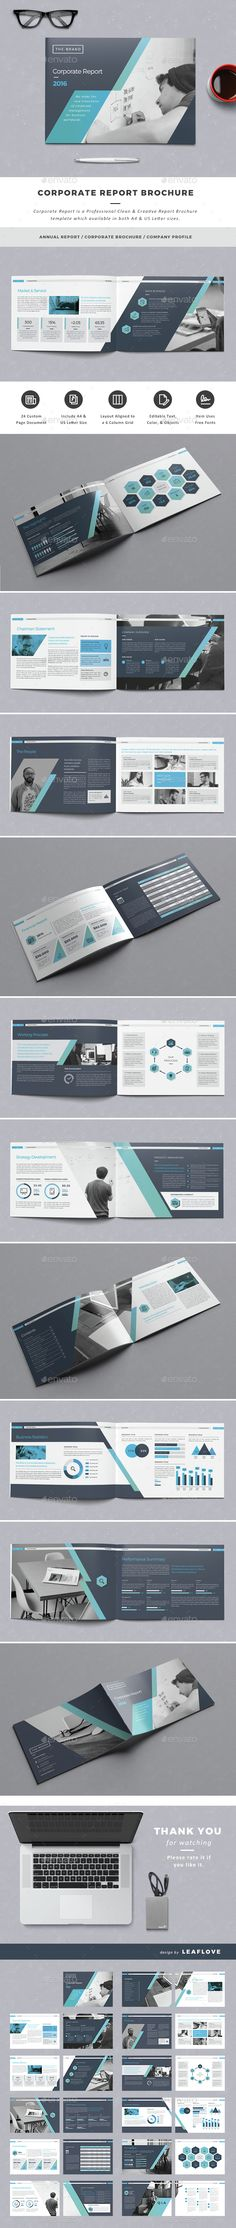 Corporate Report Brochure Template InDesign INDD. Download here: http://graphicriver.net/item/corporate-report-brochure/14774858?ref=ksioks